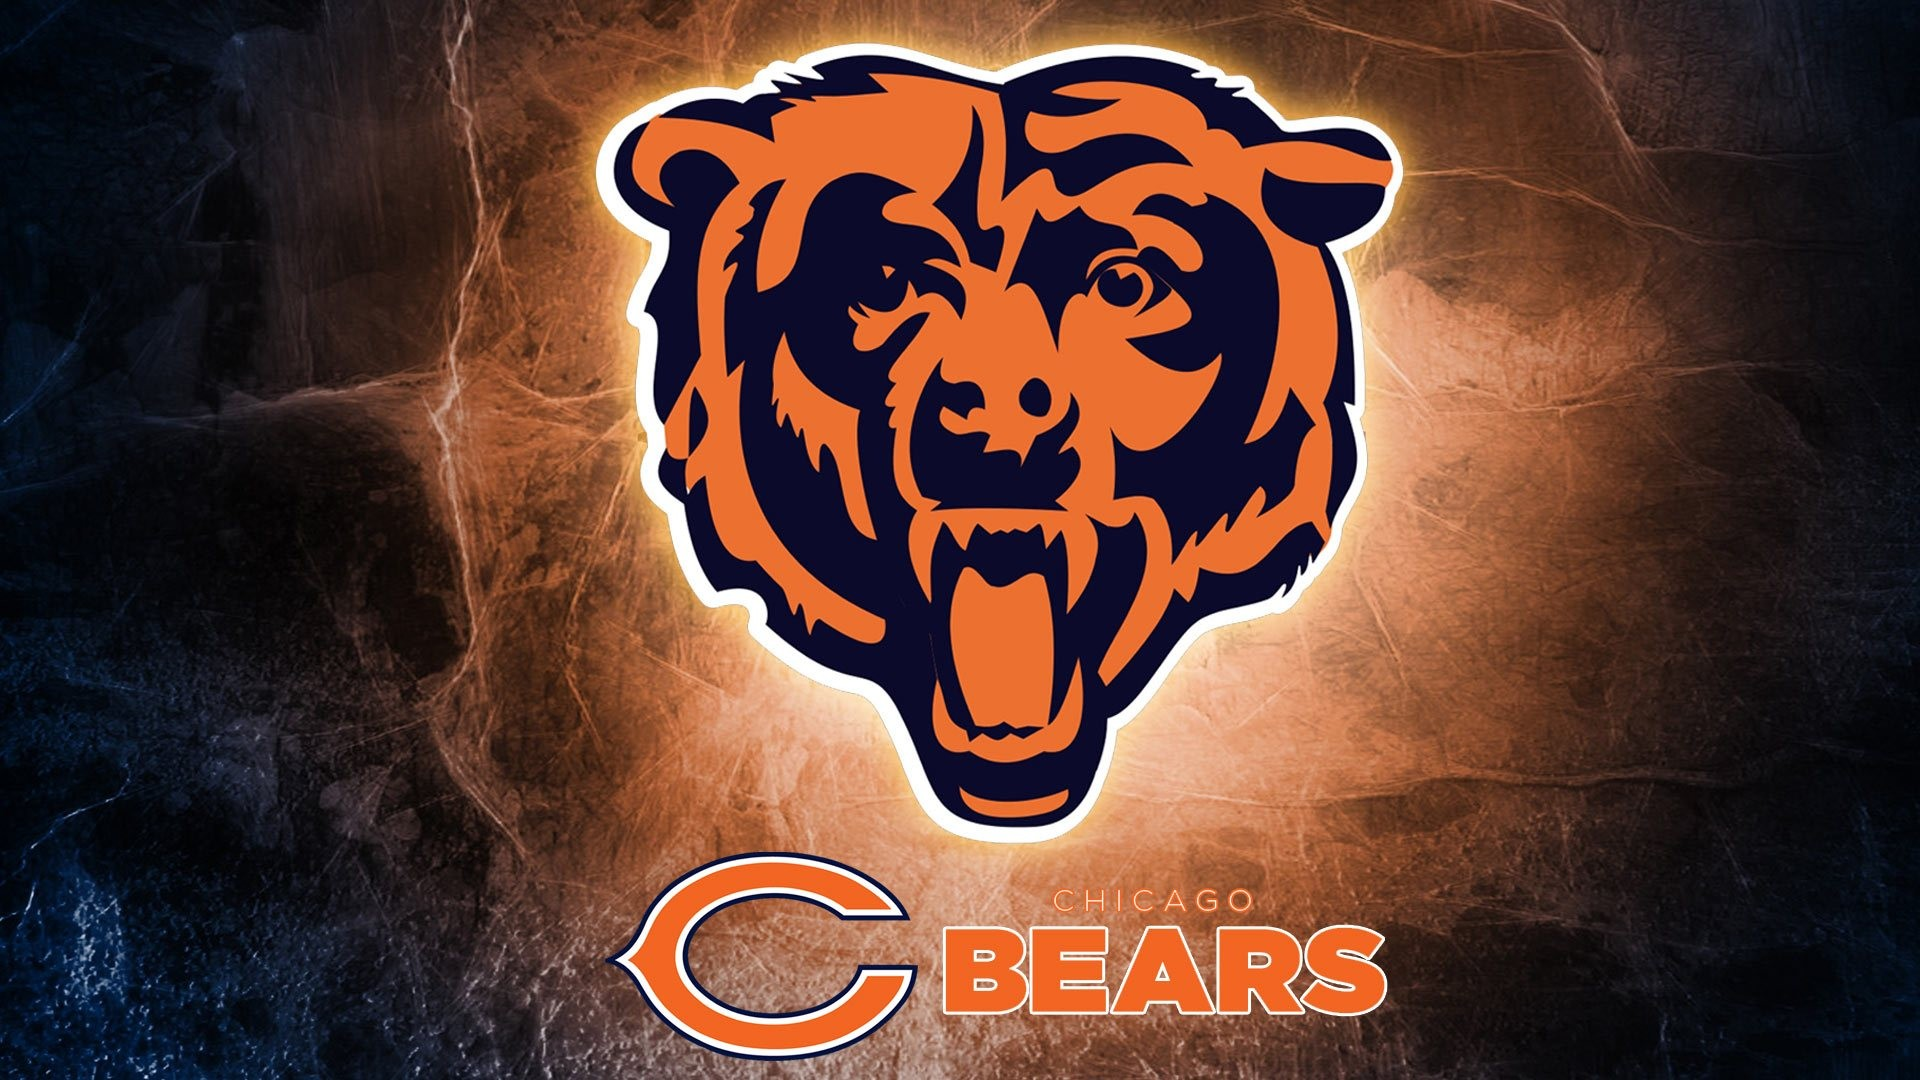 HD Chicago Bears Wallpapers   2021 NFL Football Wallpapers 1920x1080